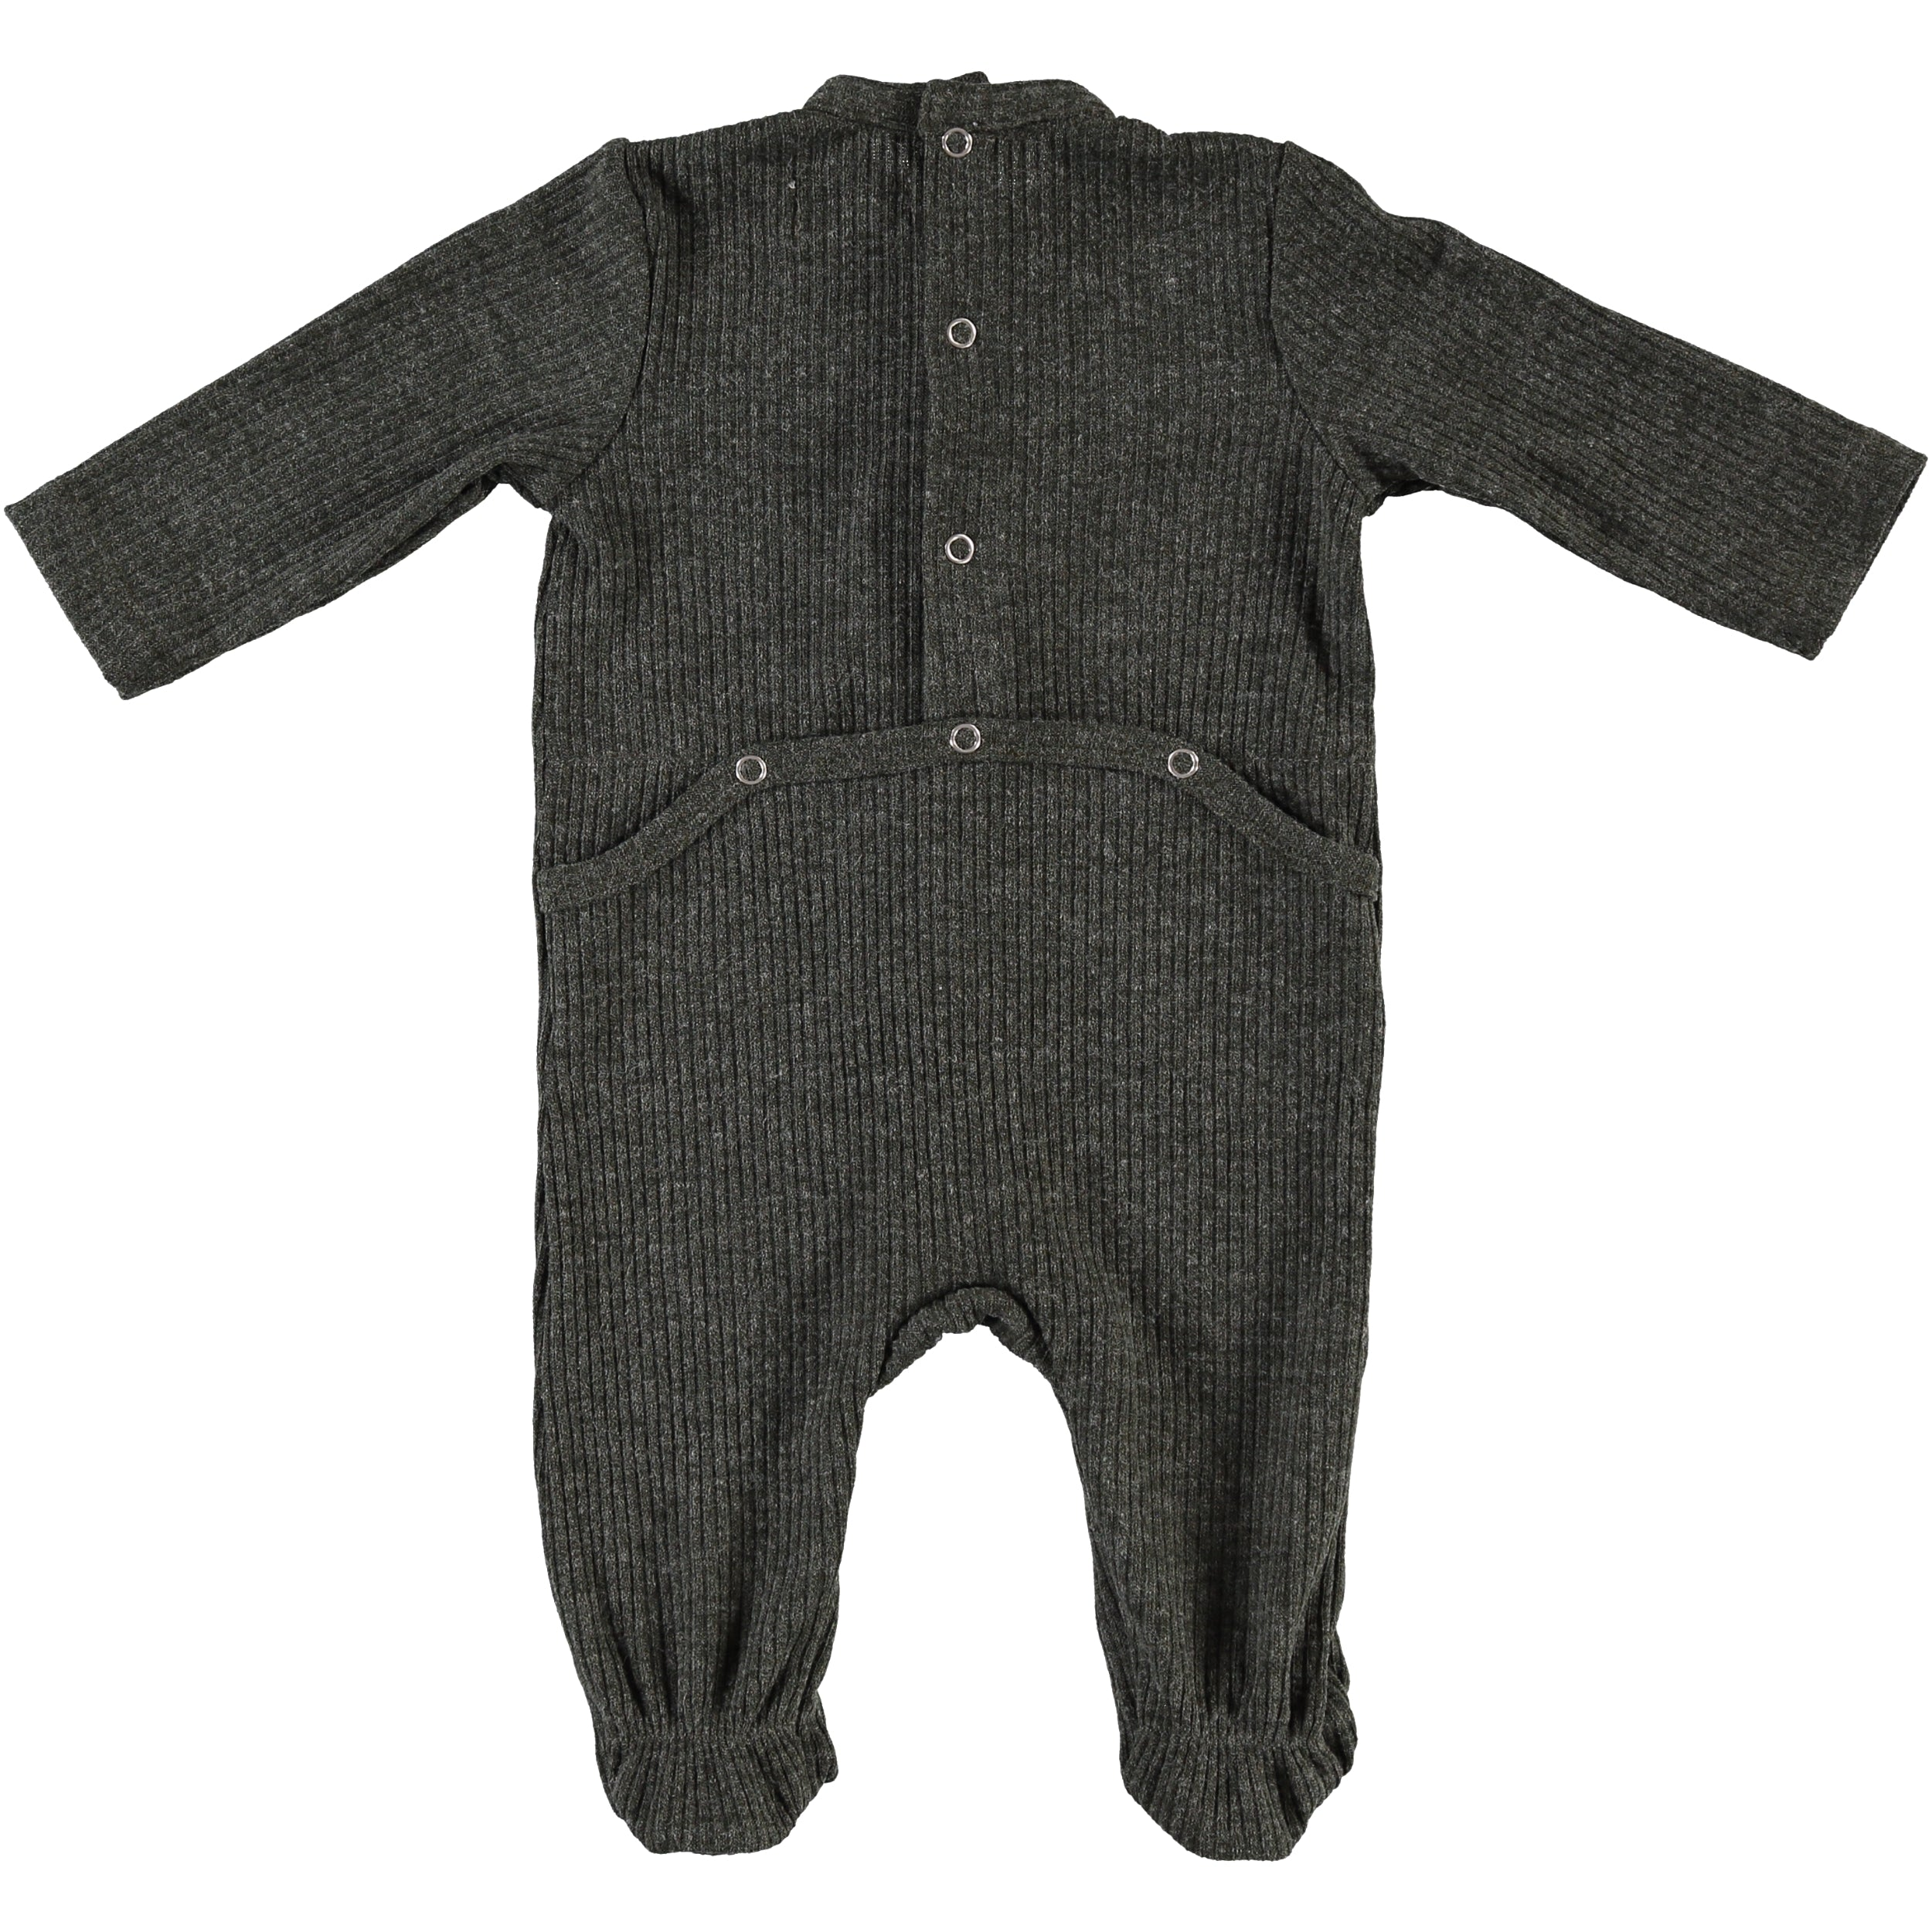 Body Fitted Baby Footsie - Army Green - PiccinoPiccina